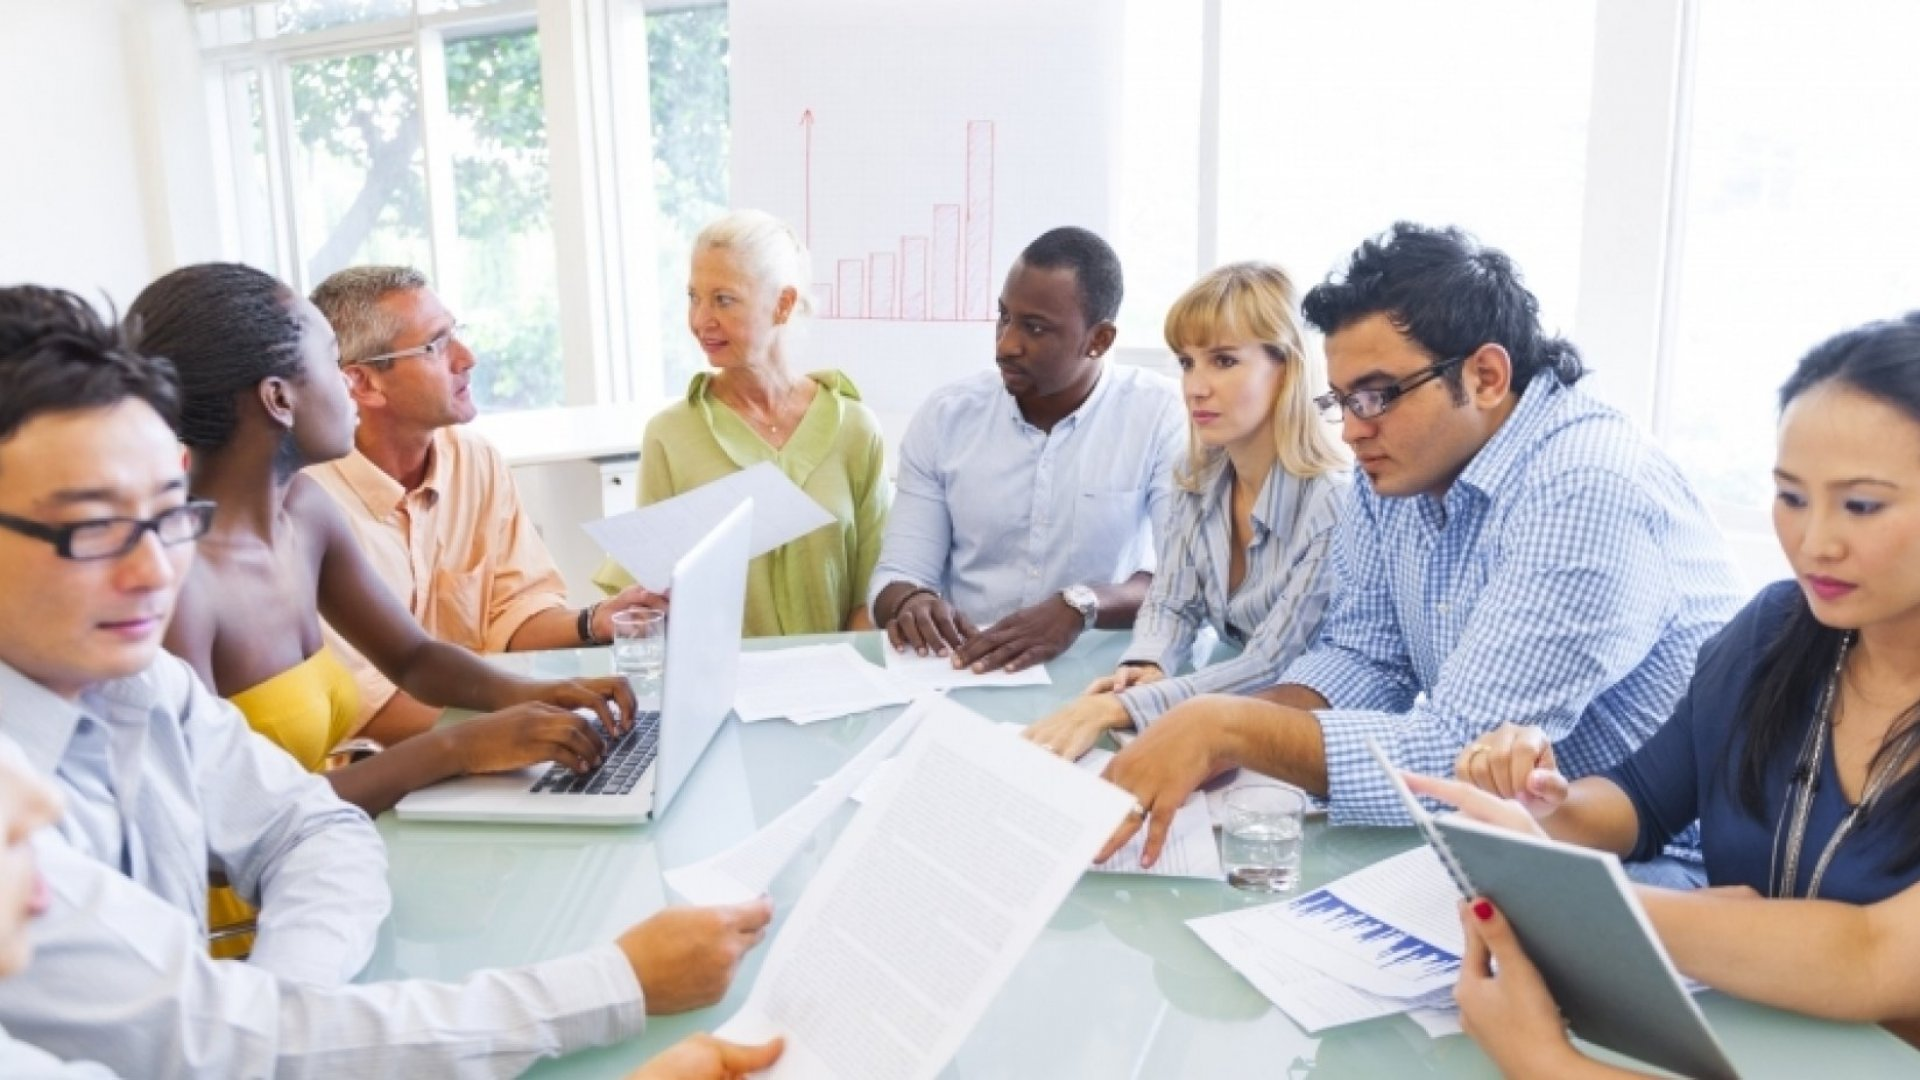 The Most Overlooked Skill in Diversity Training that Impacts Teams